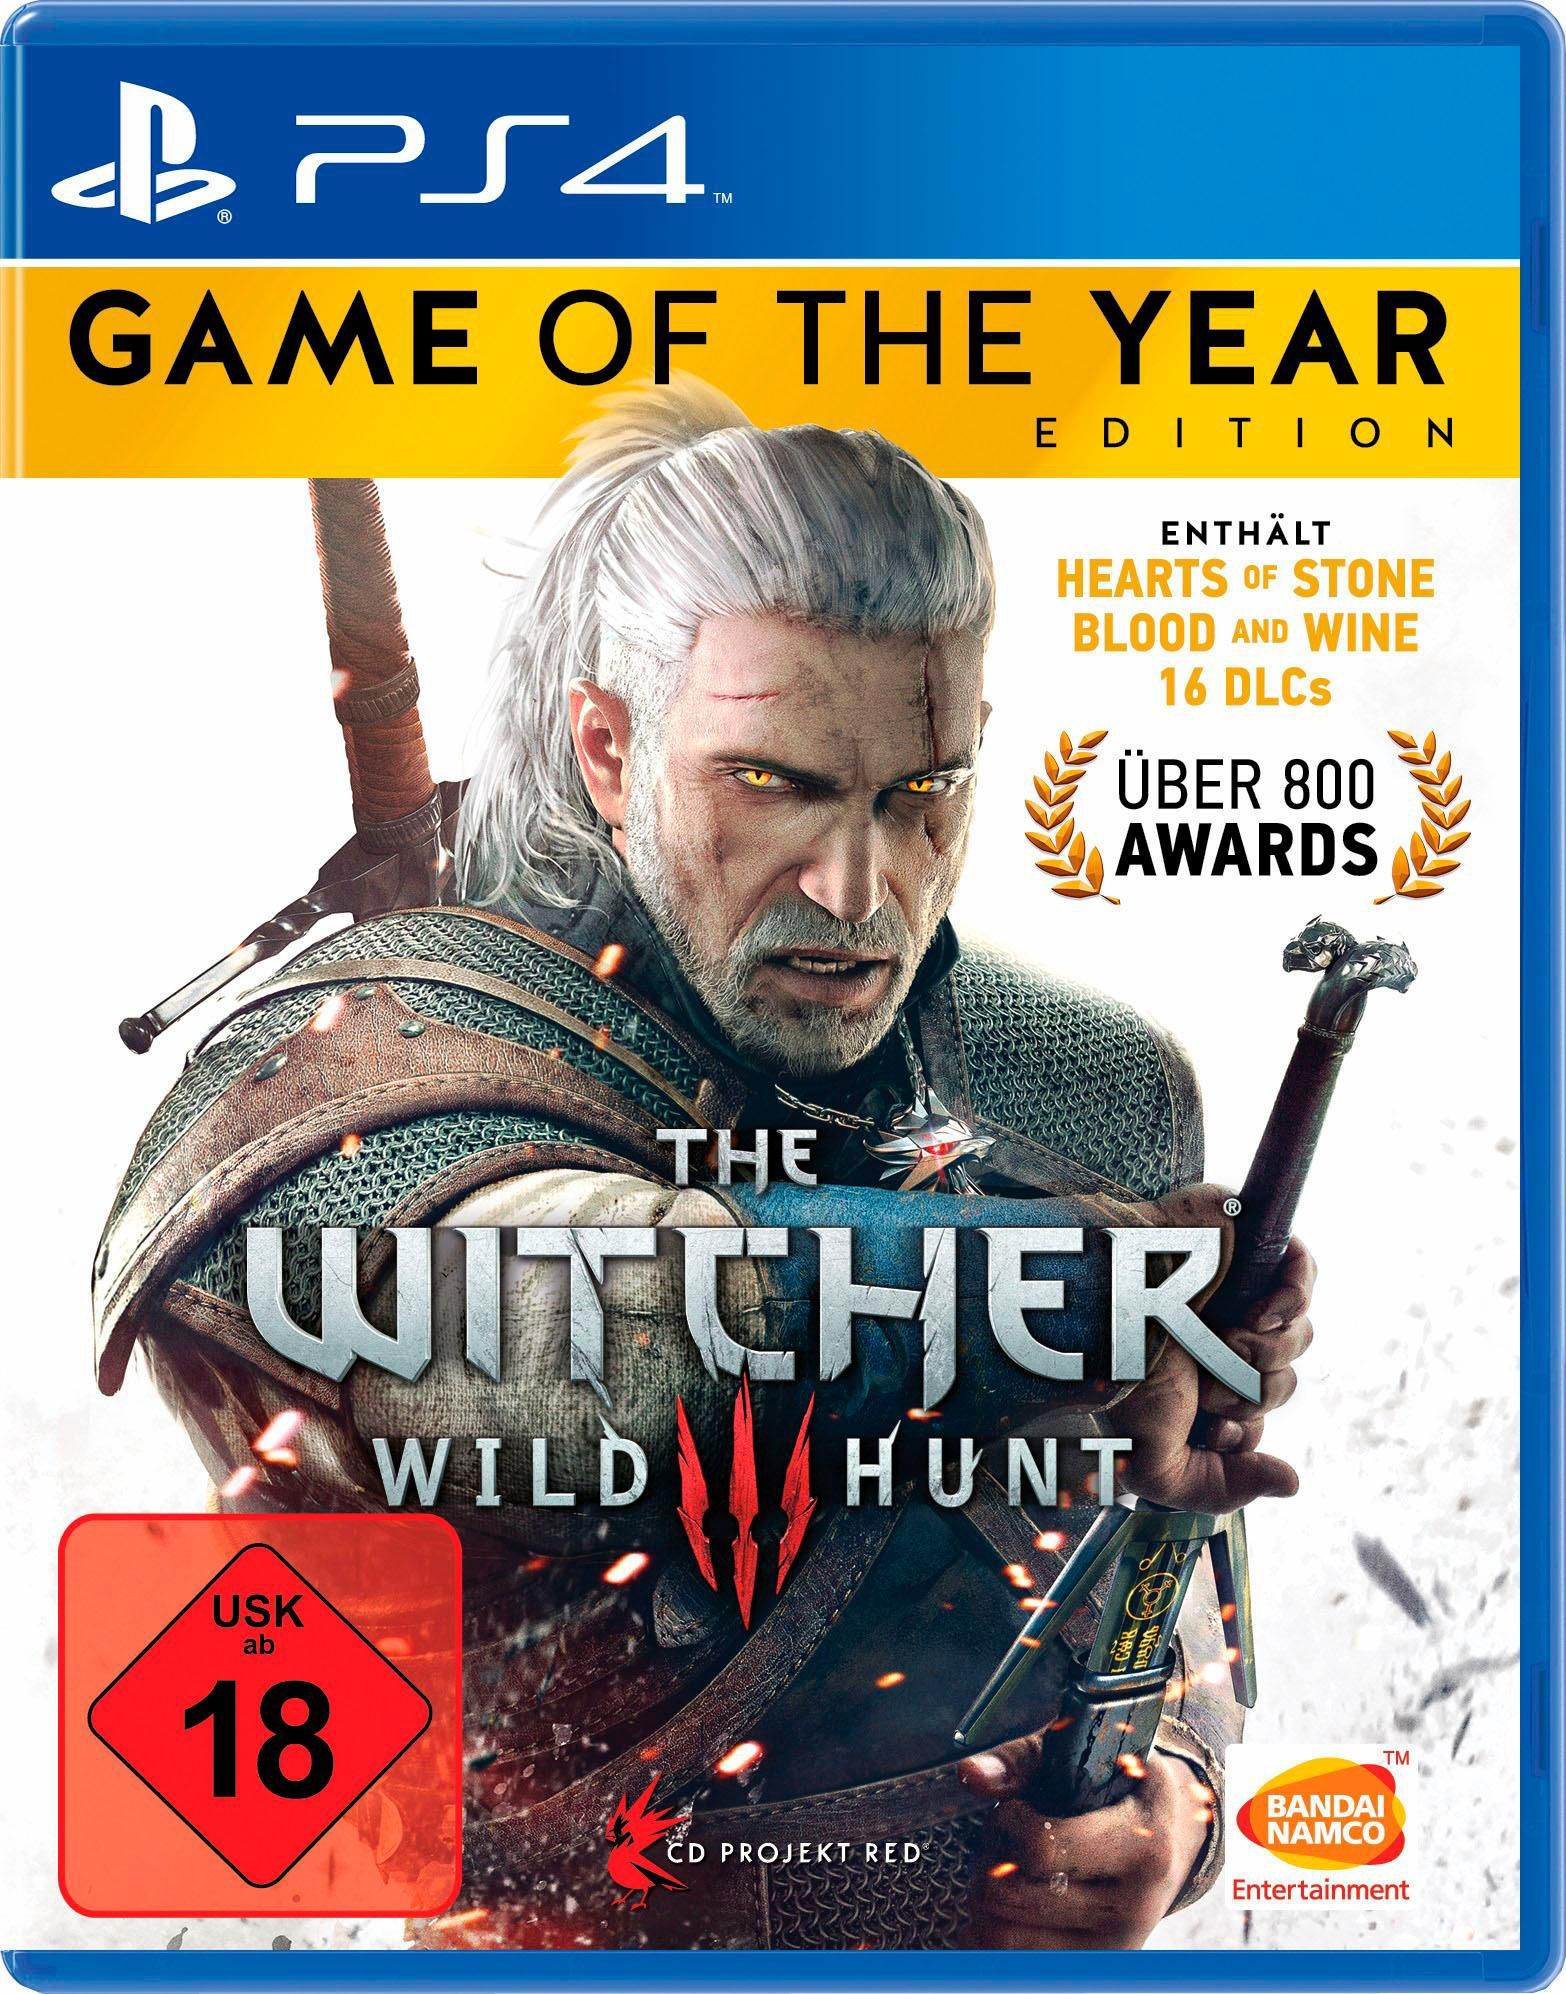 BANDAI NAMCO The Witcher 3: Wild Hunt - Game of of the Year Edition (PS4)